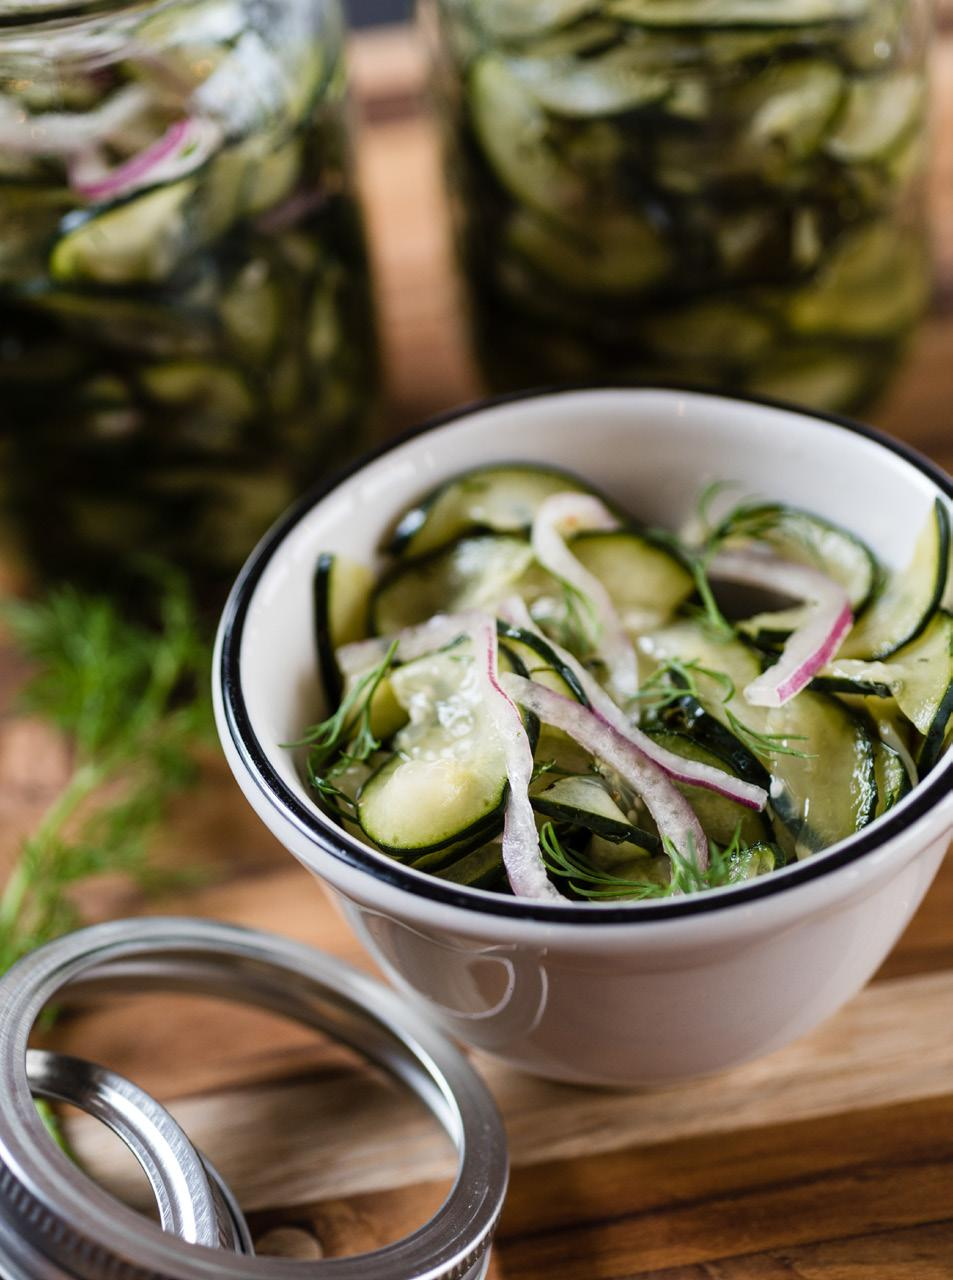 Spicy Cucumber Salad Serves: 8 6 medium cucumbers 1 cup thinly sliced red onion 1 cup chopped fresh dill 1 1/4 cups sugar 1 cup apple cider vinegar 1 teaspoon salt 1/2 teaspoon coarse black pepper